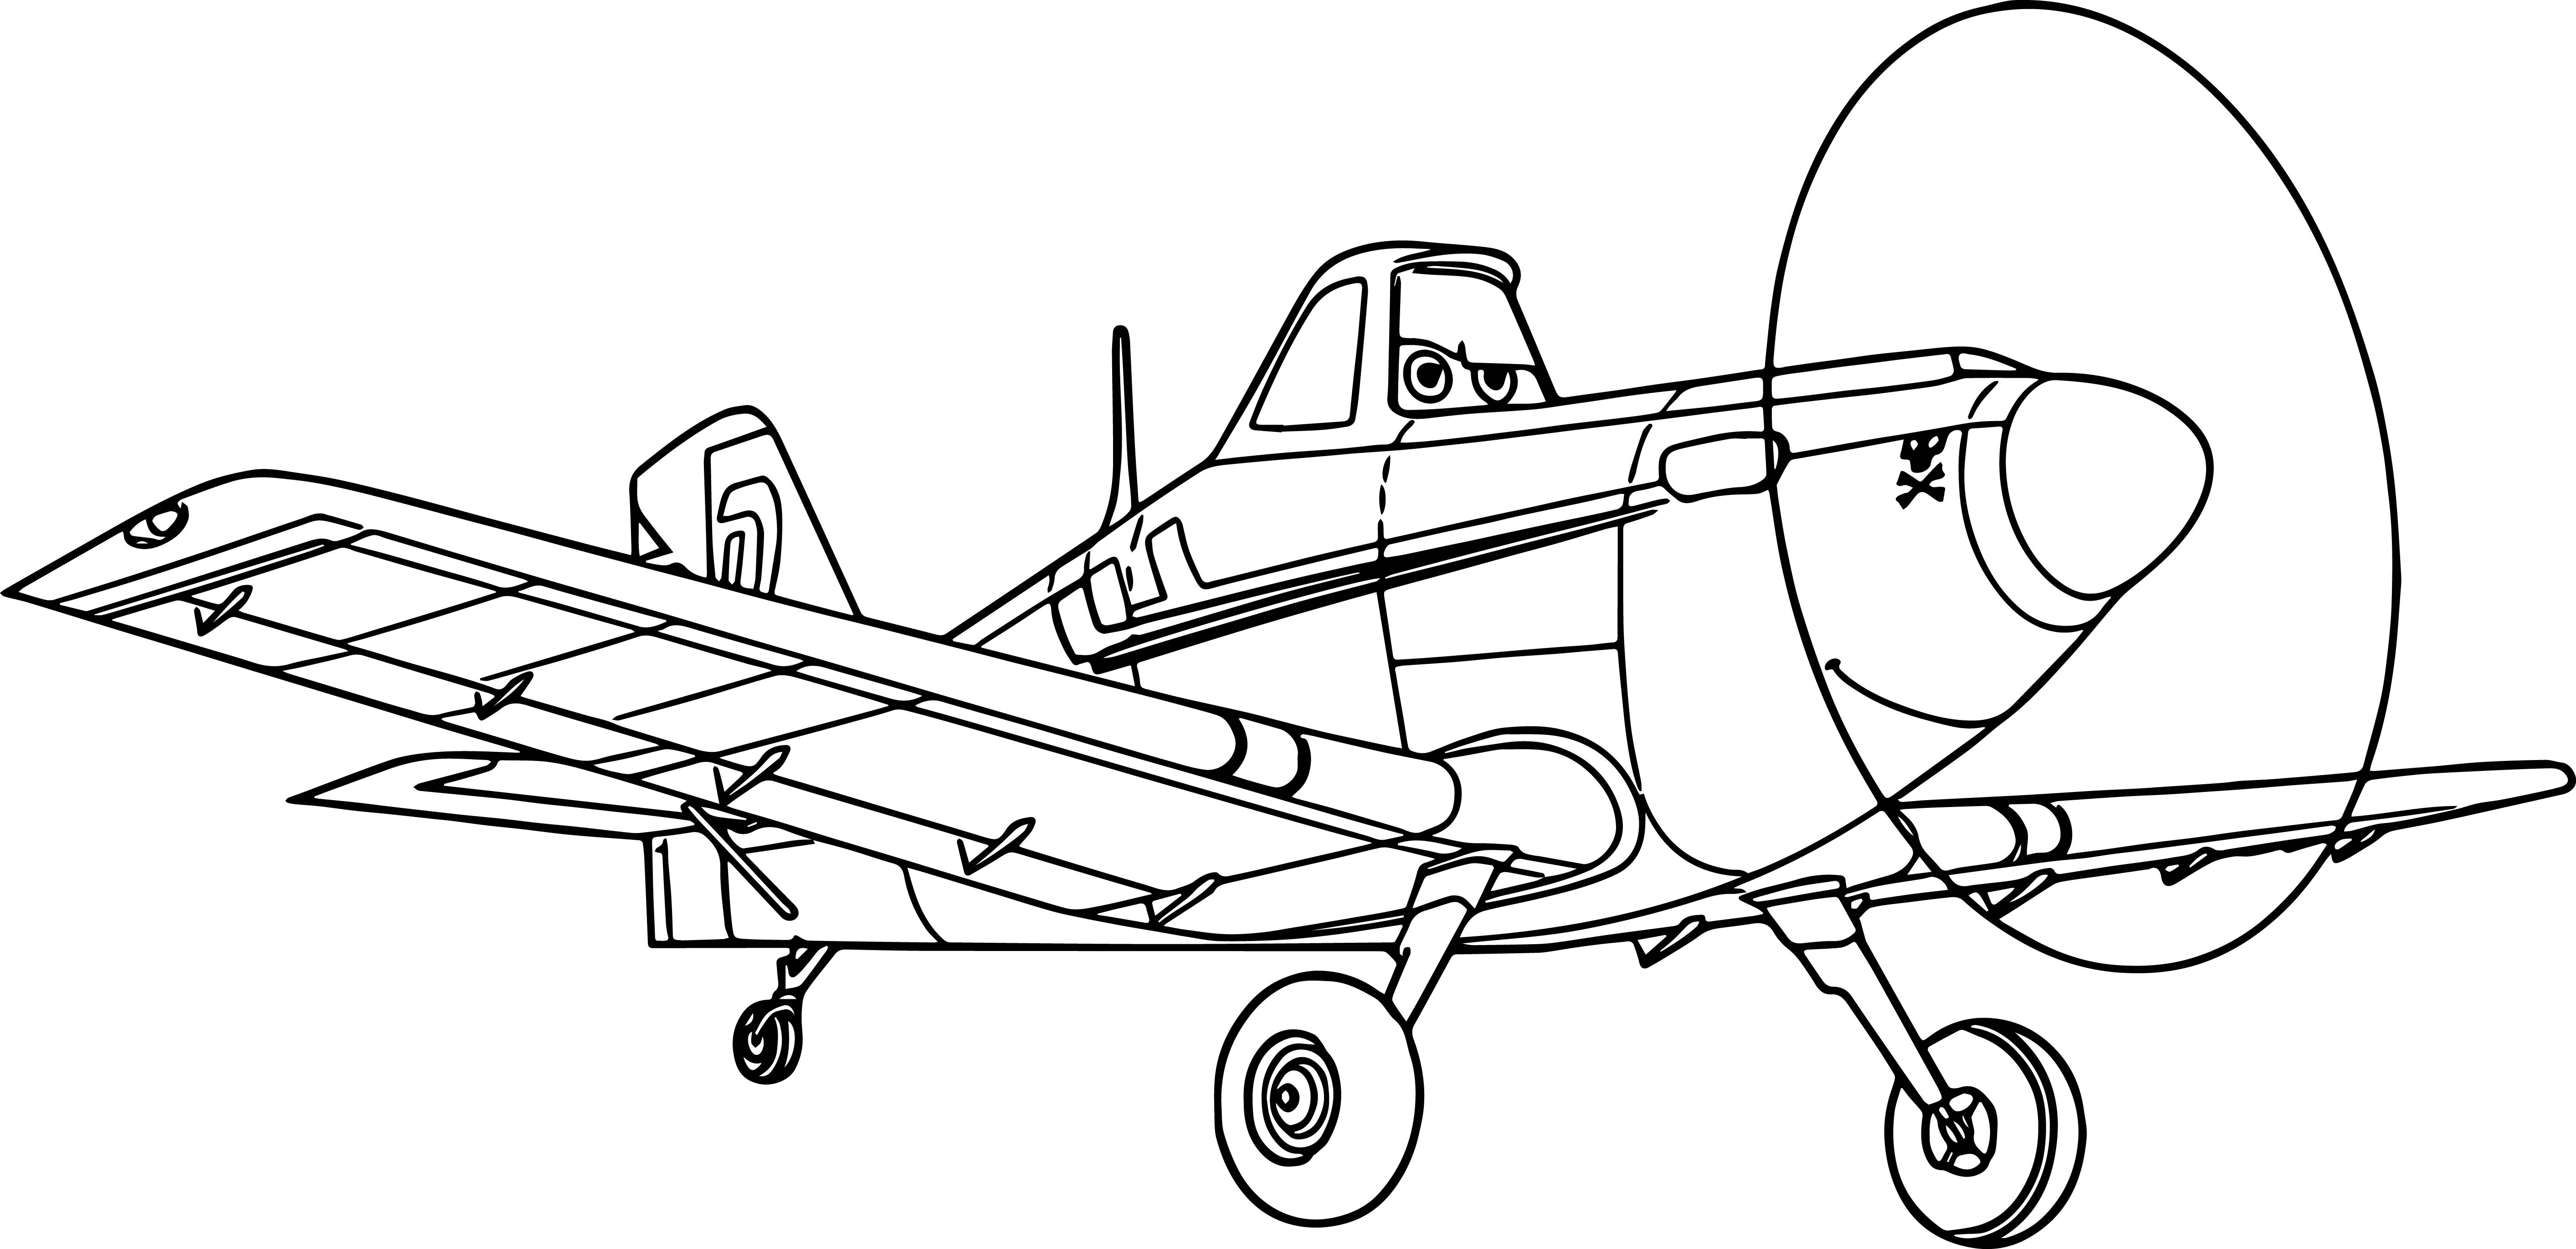 disney planes pictures to print disney planes coloring pages at getdrawings free download print pictures planes disney to